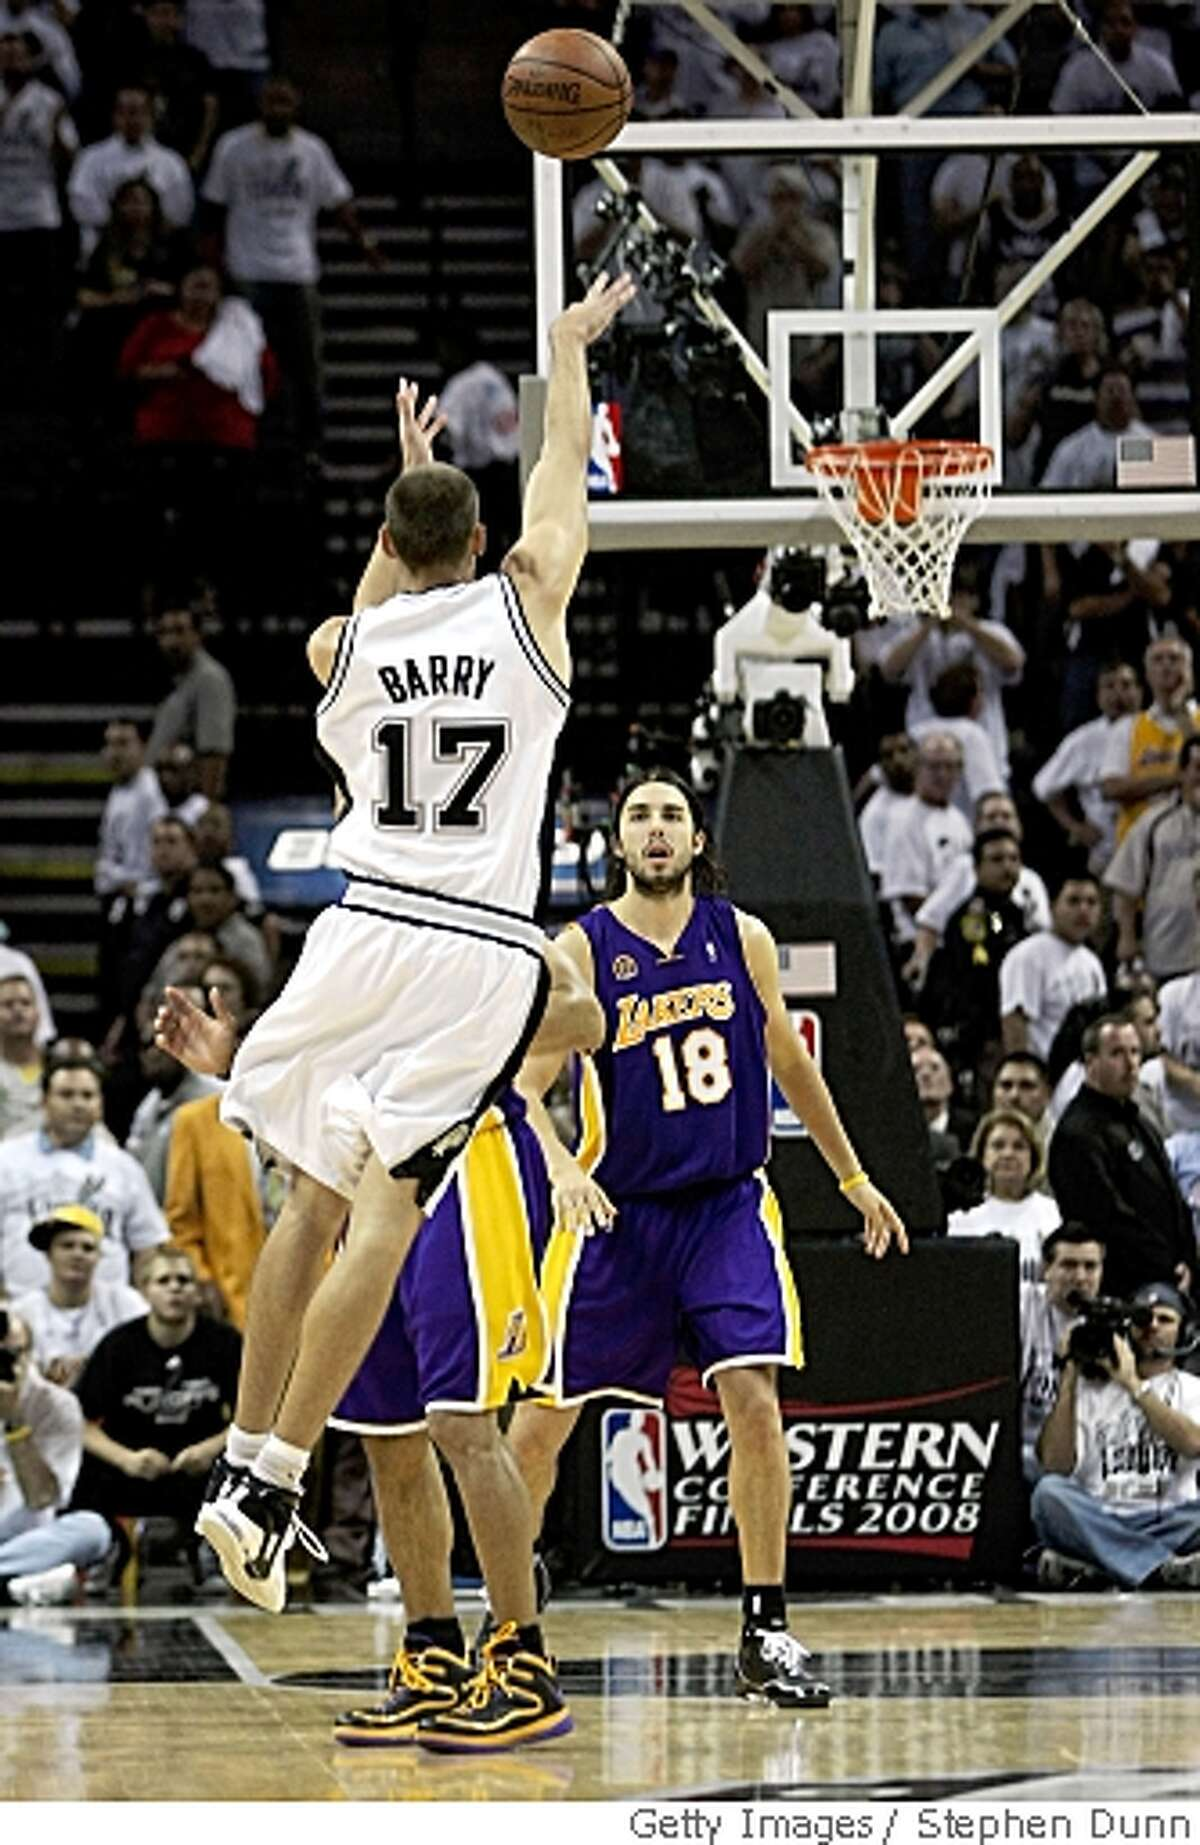 SAN ANTONIO - MAY 27: Brent Barry #17 of the San Antonio Spurs shoots and misses the final shot over Derek Fisher #2 of the Los Angeles Lakers in Game Four of the Western Conference Finals during the 2008 NBA Playoffs on May 27, 2008 at the AT&T Center in San Antonio, Texas. The Lakers defeated the Spurs 93-91 to take a 3-1 series lead. NOTE TO USER: User expressly acknowledges and agrees that, by downloading and/or using this Photograph, user is consenting to the terms and conditions of the Getty Images License Agreement. (Photo by Stephen Dunn/Getty Images)